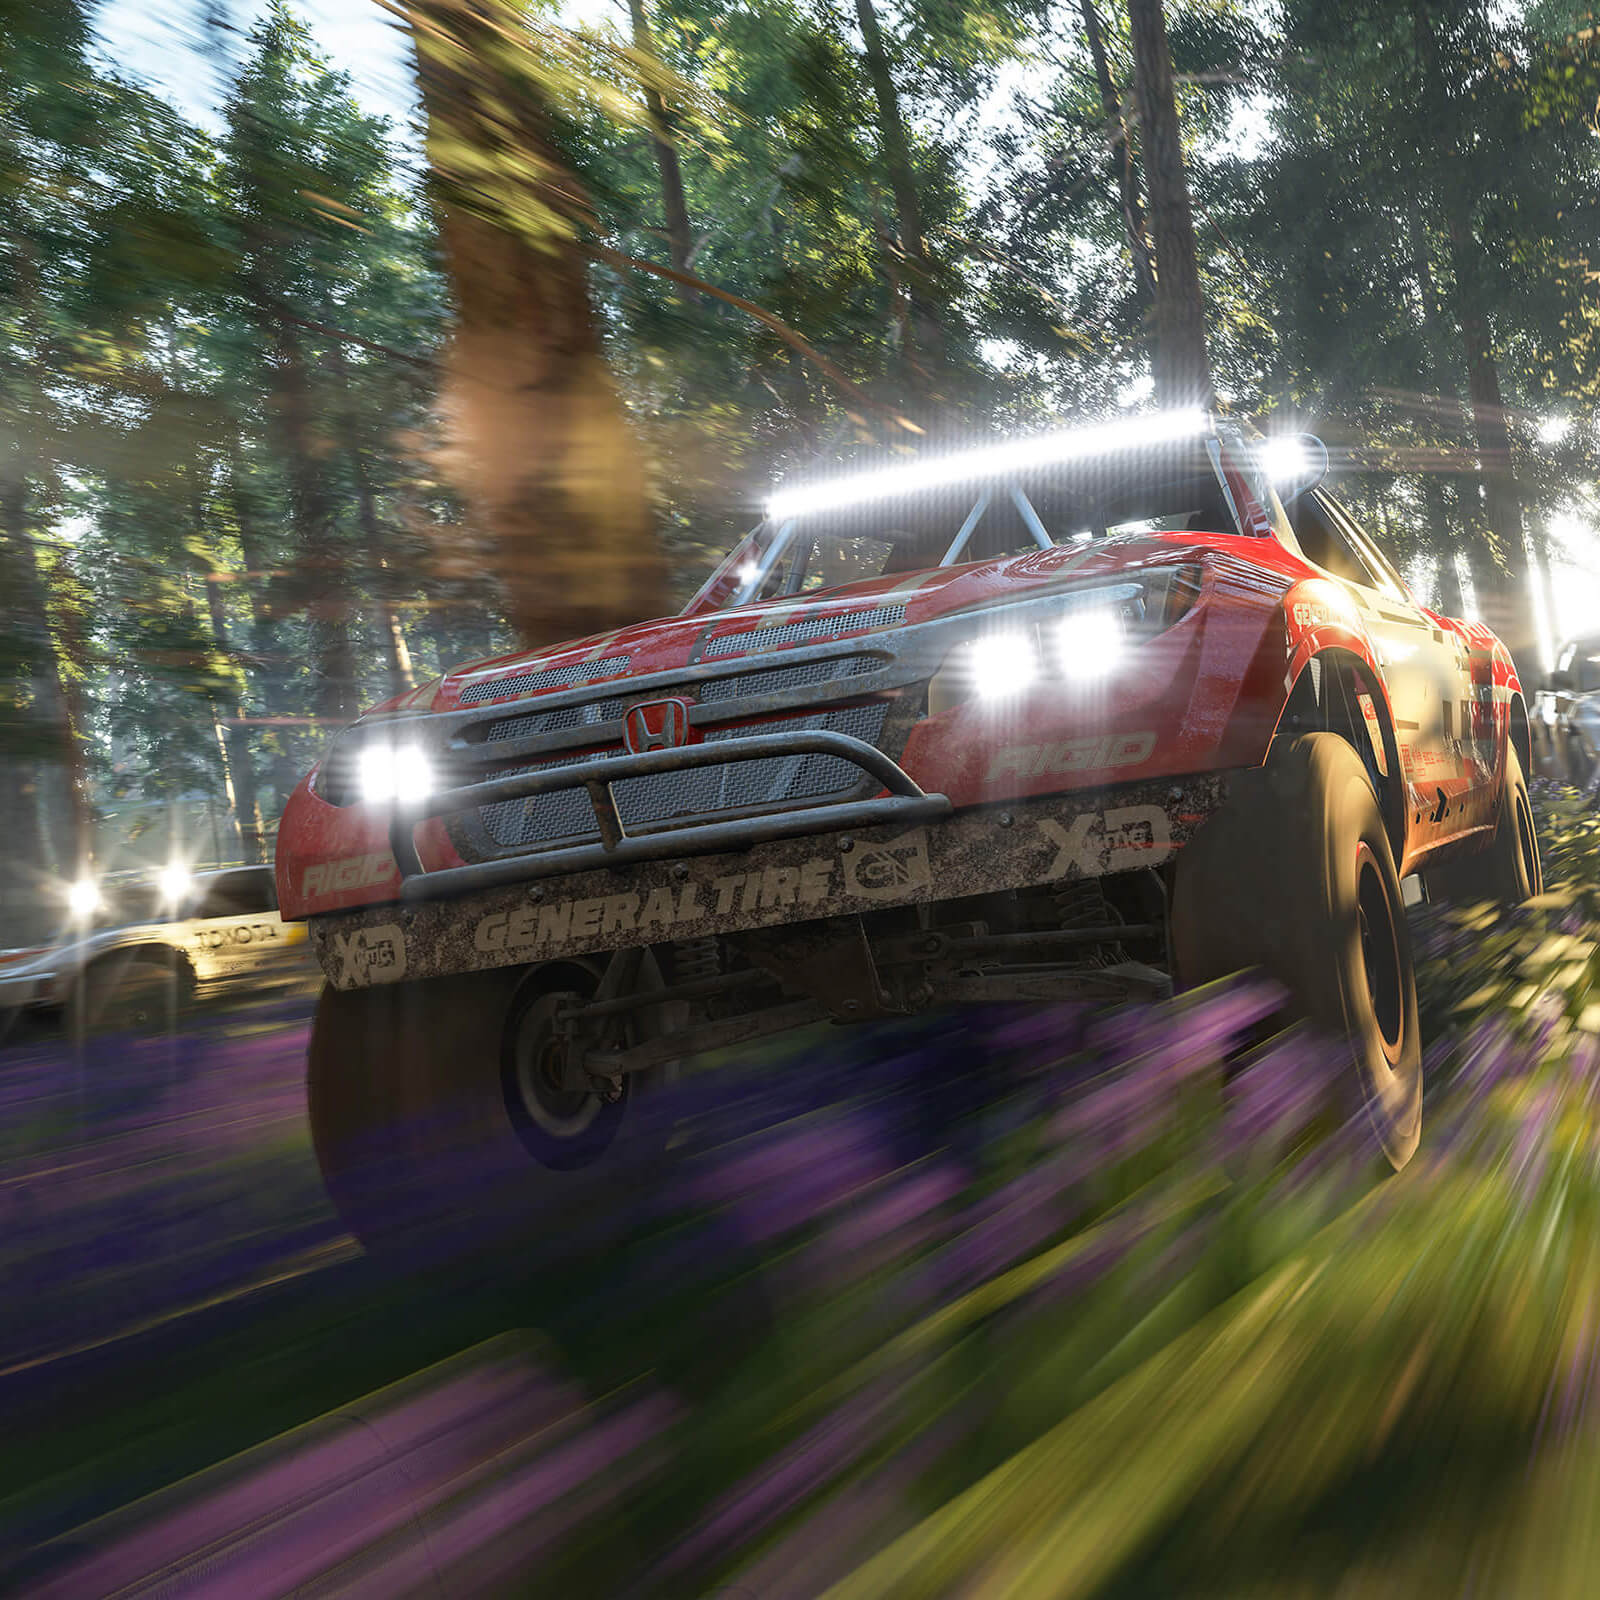 cars racing through a forest